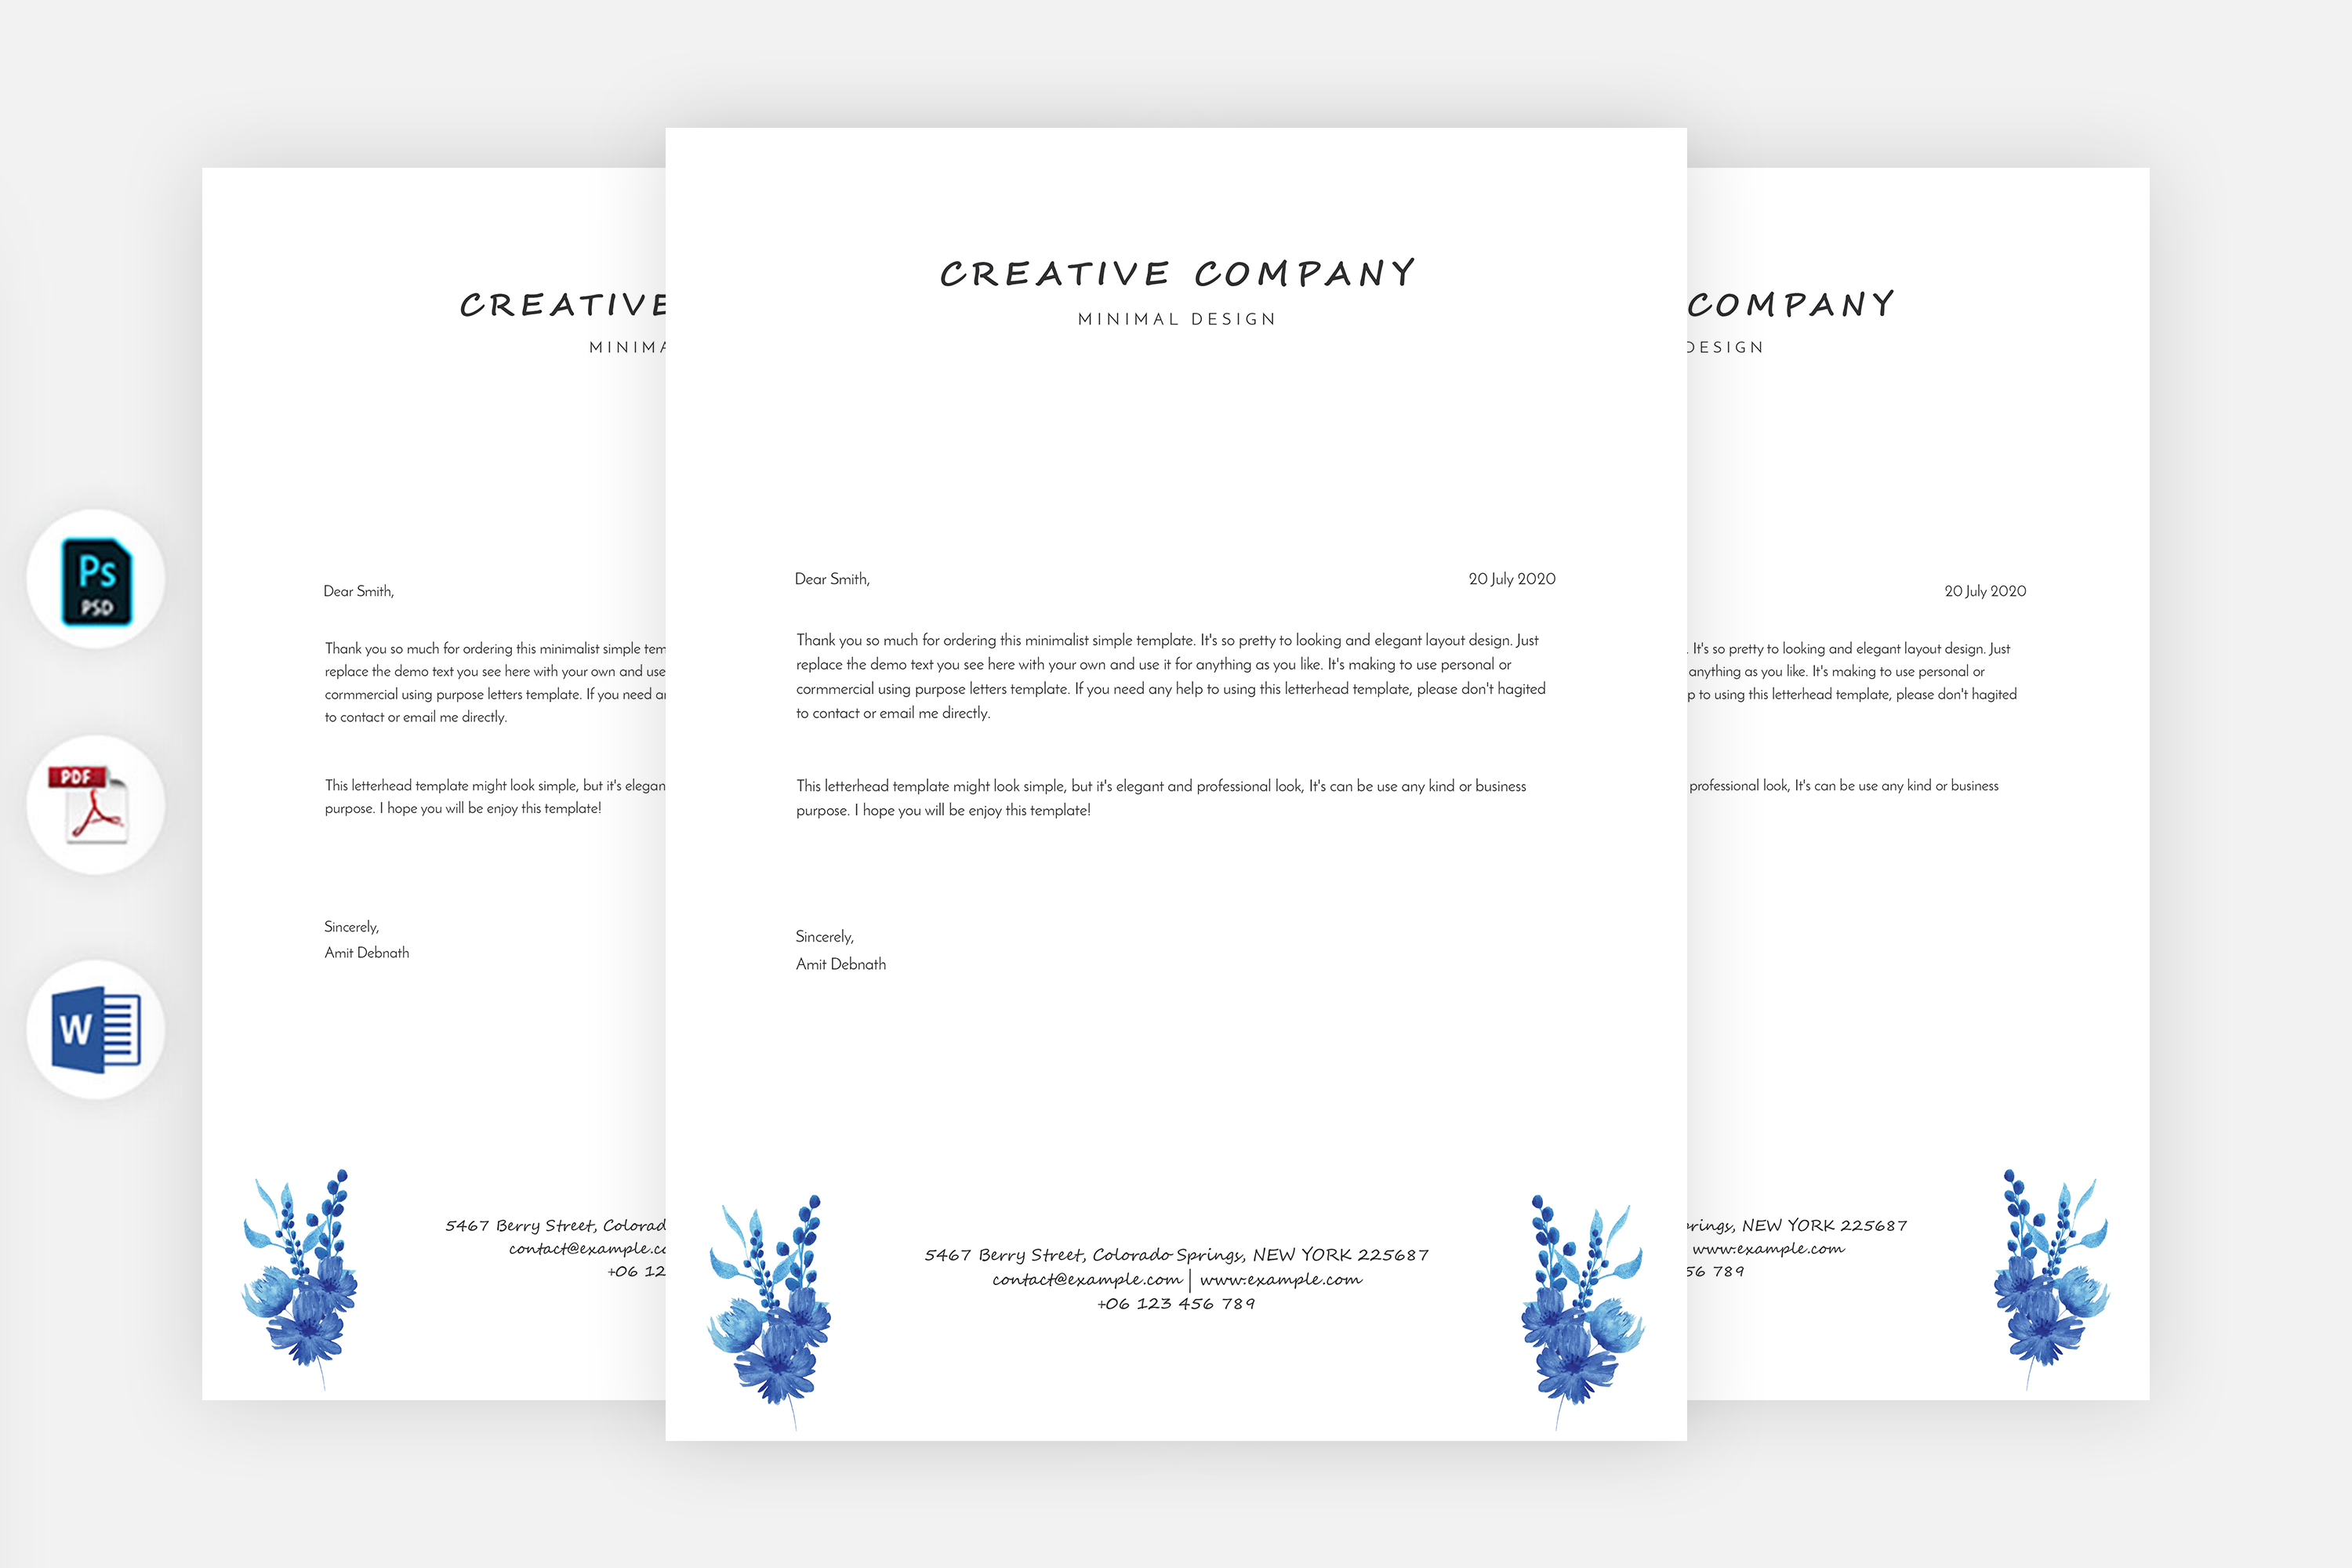 Modern Letterhead Template on personal training templates, onenote notebook templates, business cards templates, personal resume templates, personal card templates, elegant border design templates, personal statement templates, personal flyer templates, personal trainer websites templates, personal planner templates, personal invoice templates, personal ad templates, personal newsletter templates, logo templates, personal stationery templates, personal branding templates, creative word resume templates, personal letter templates, excel personal trainer client templates, wedding planner templates,